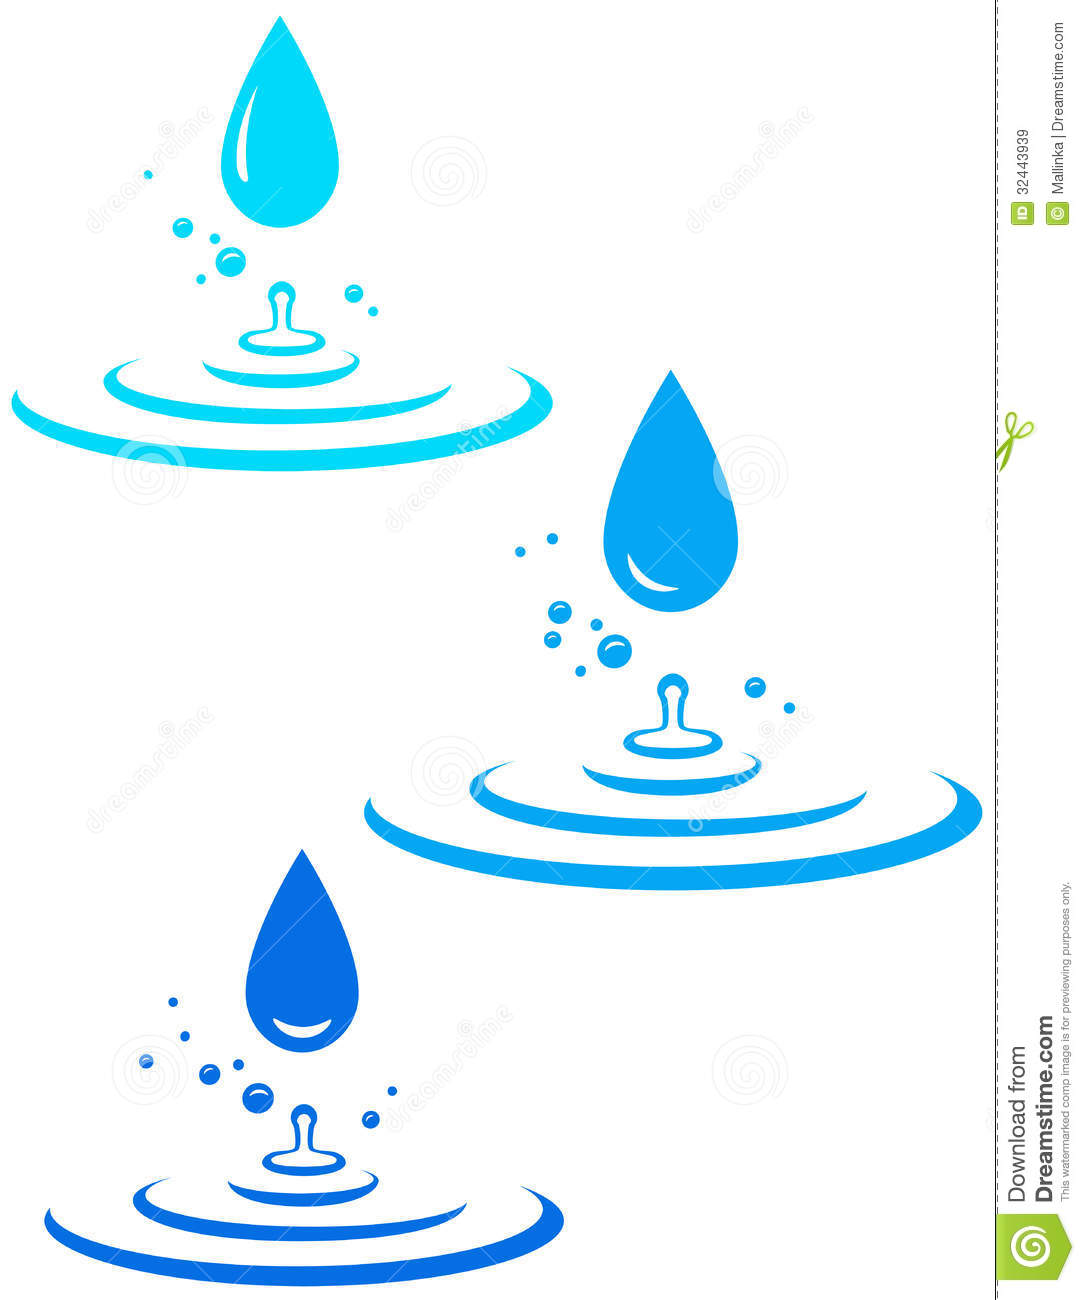 Water drops clipart.